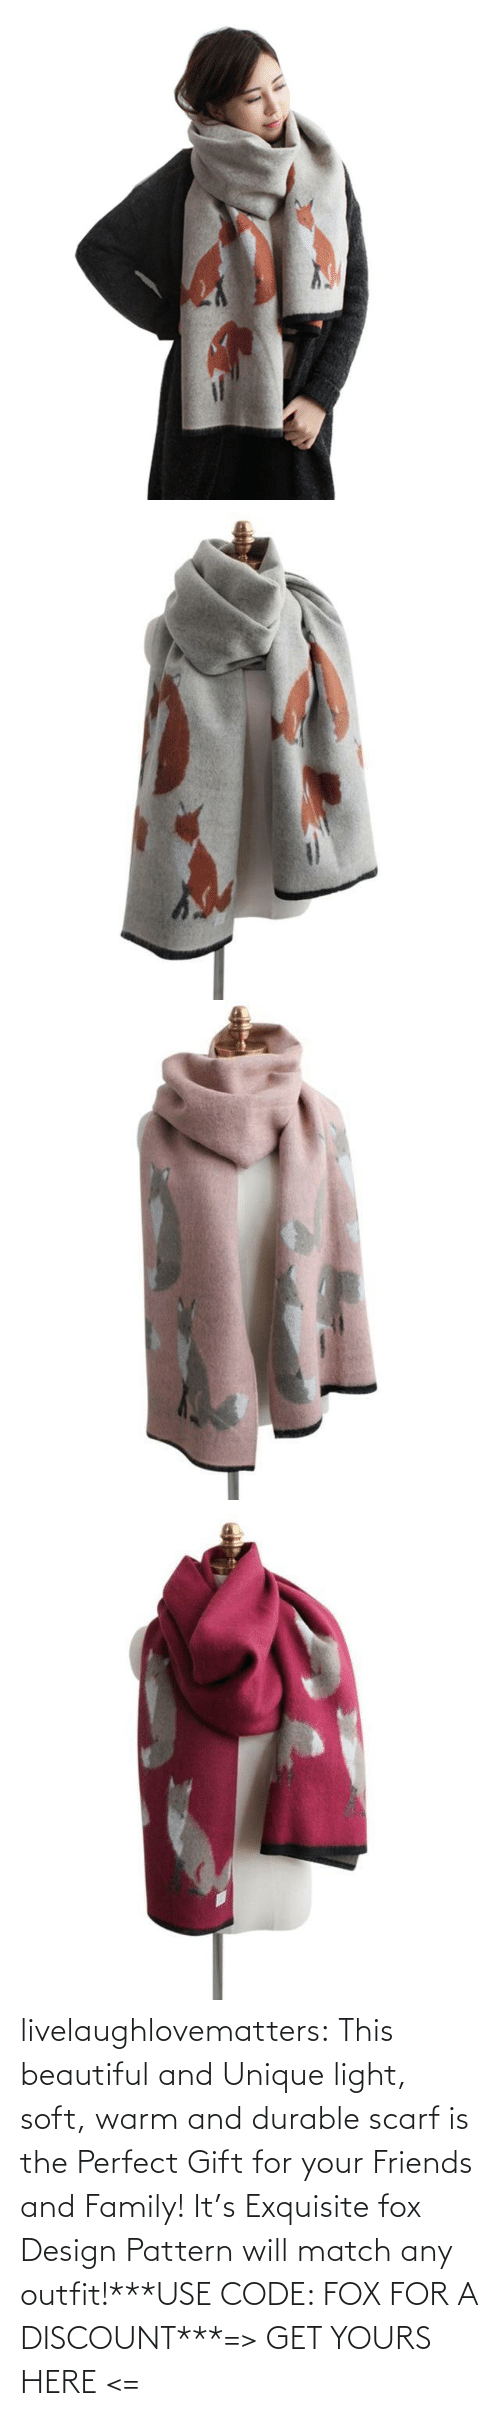 use: livelaughlovematters:  This beautiful and Unique light, soft, warm and durable scarf is the Perfect Gift for your Friends and Family! It's Exquisite fox Design Pattern will match any outfit!***USE CODE: FOX FOR A DISCOUNT***=> GET YOURS HERE <=